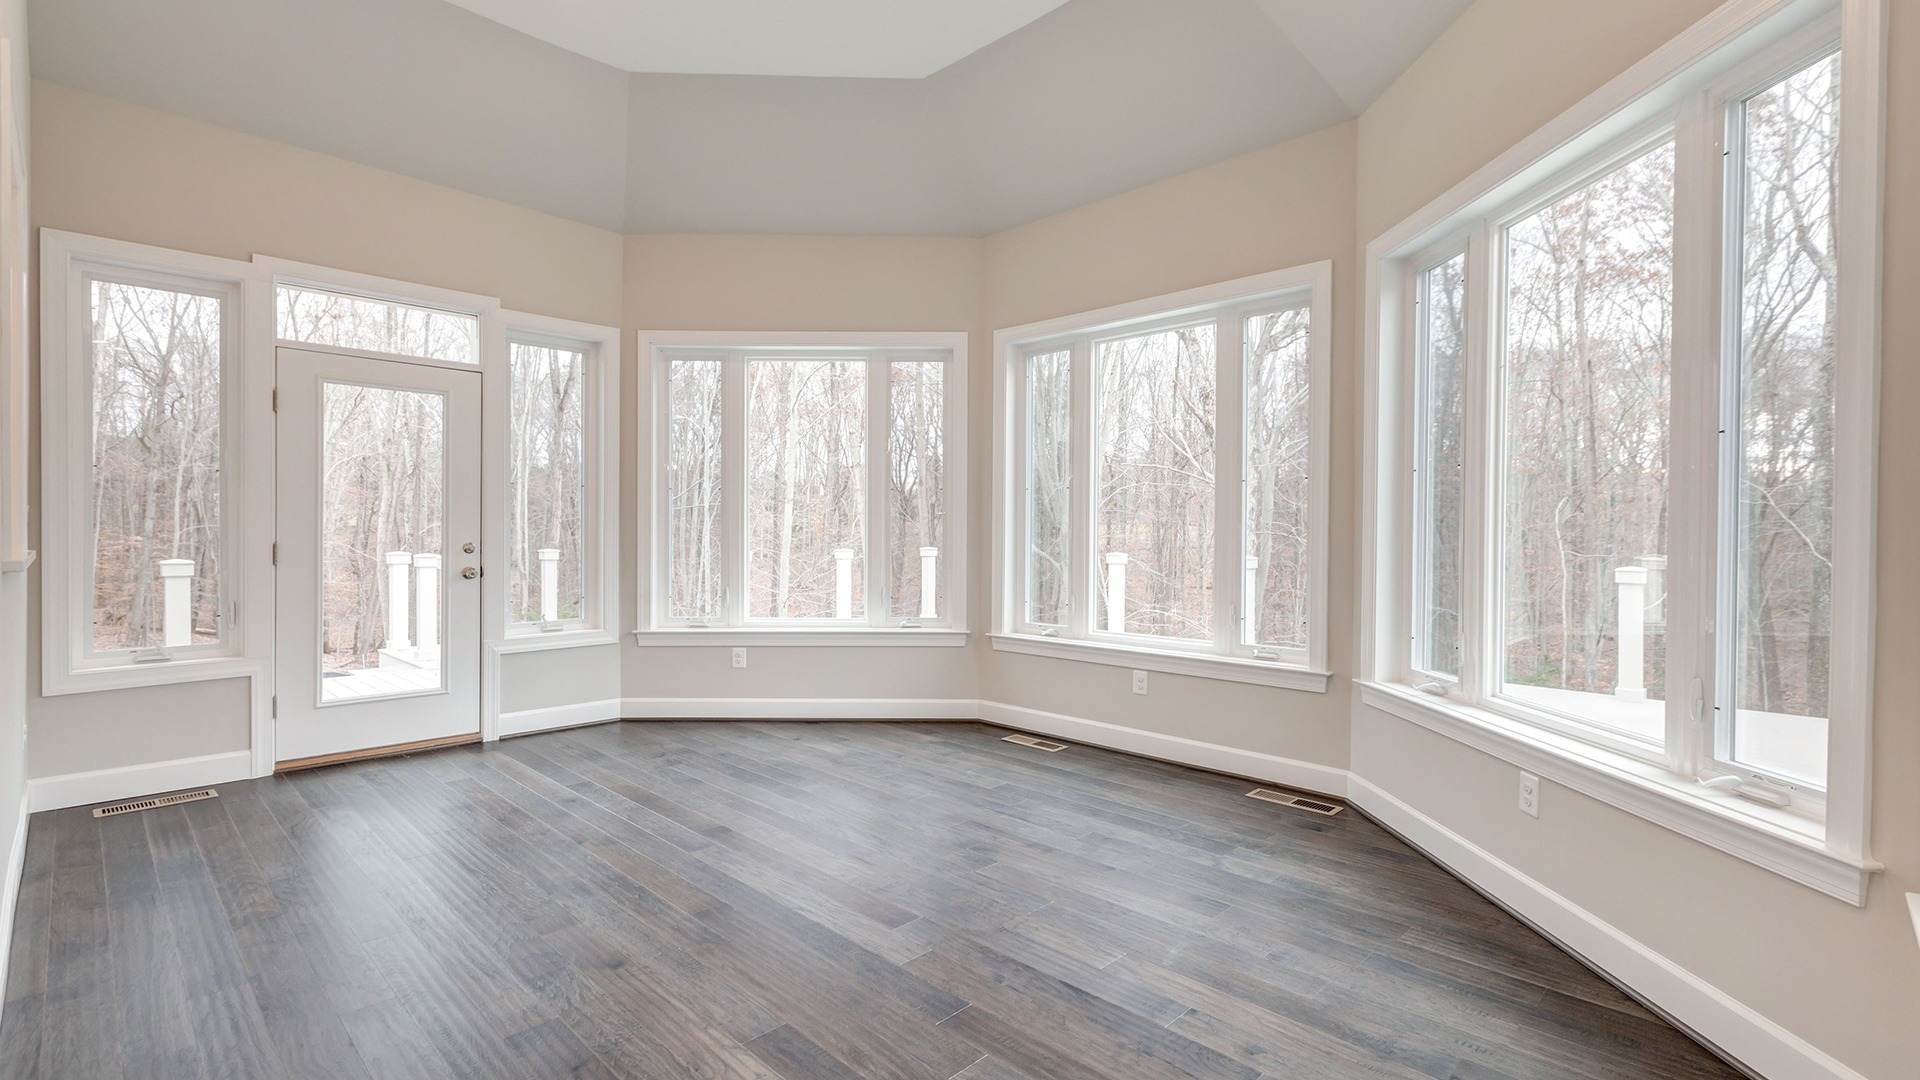 The Sunroom in the Winthrop on Lot 4 at Thompson's Crossing.